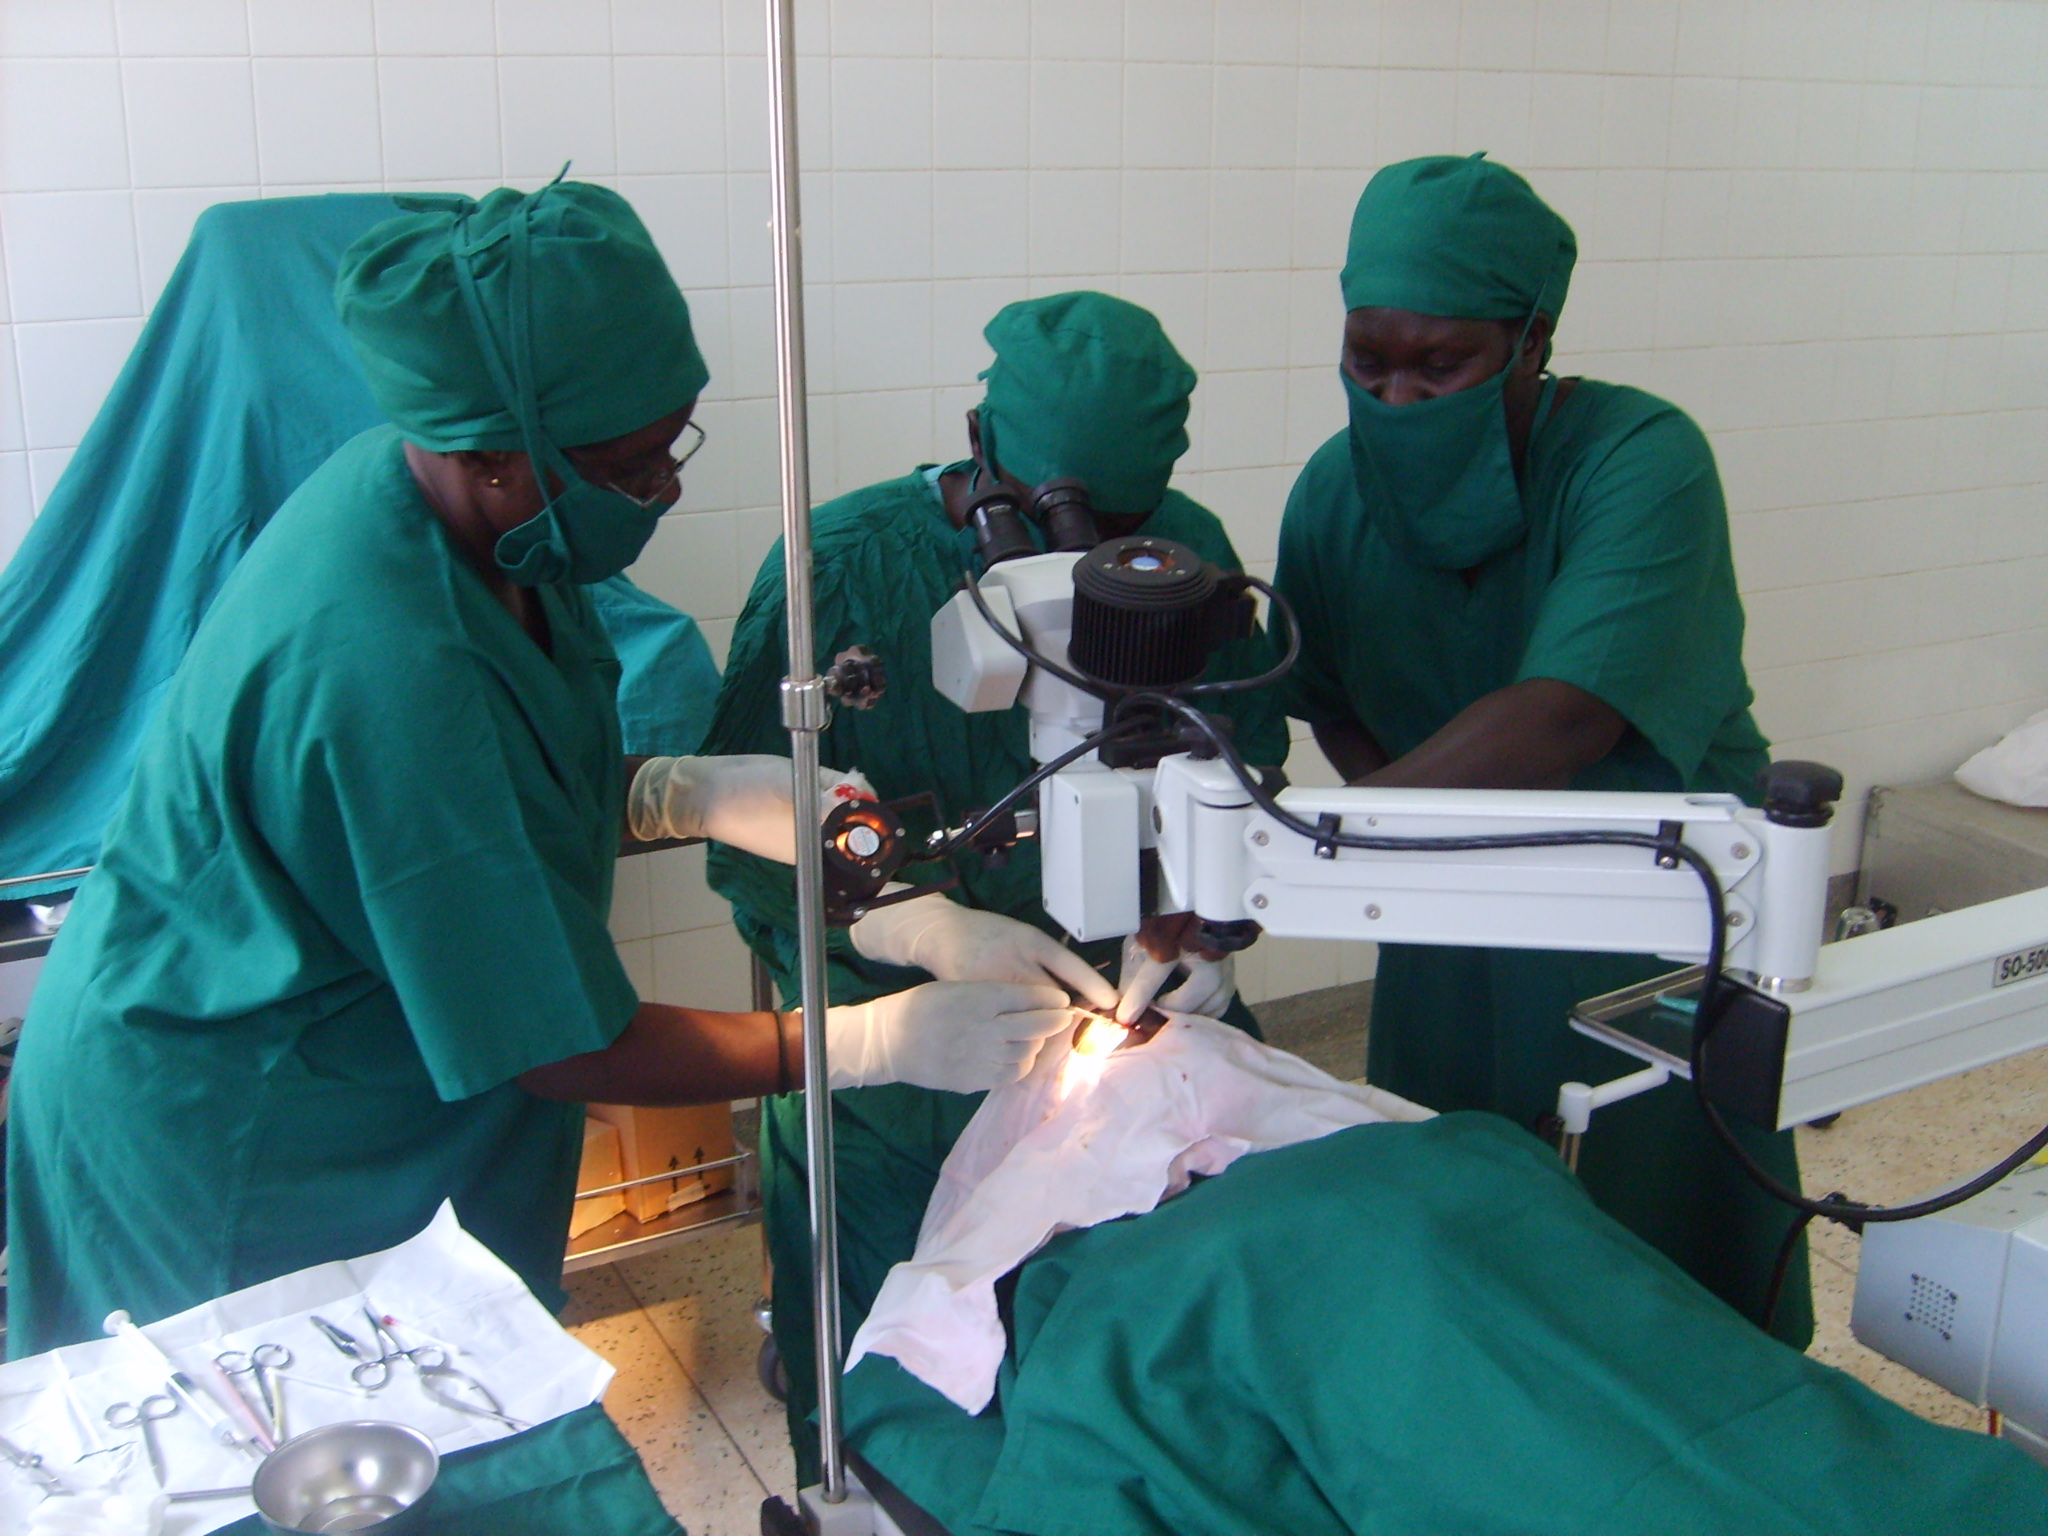 Surgeons conduct an eye operation at the Gulu district hospital in northern Uganda.